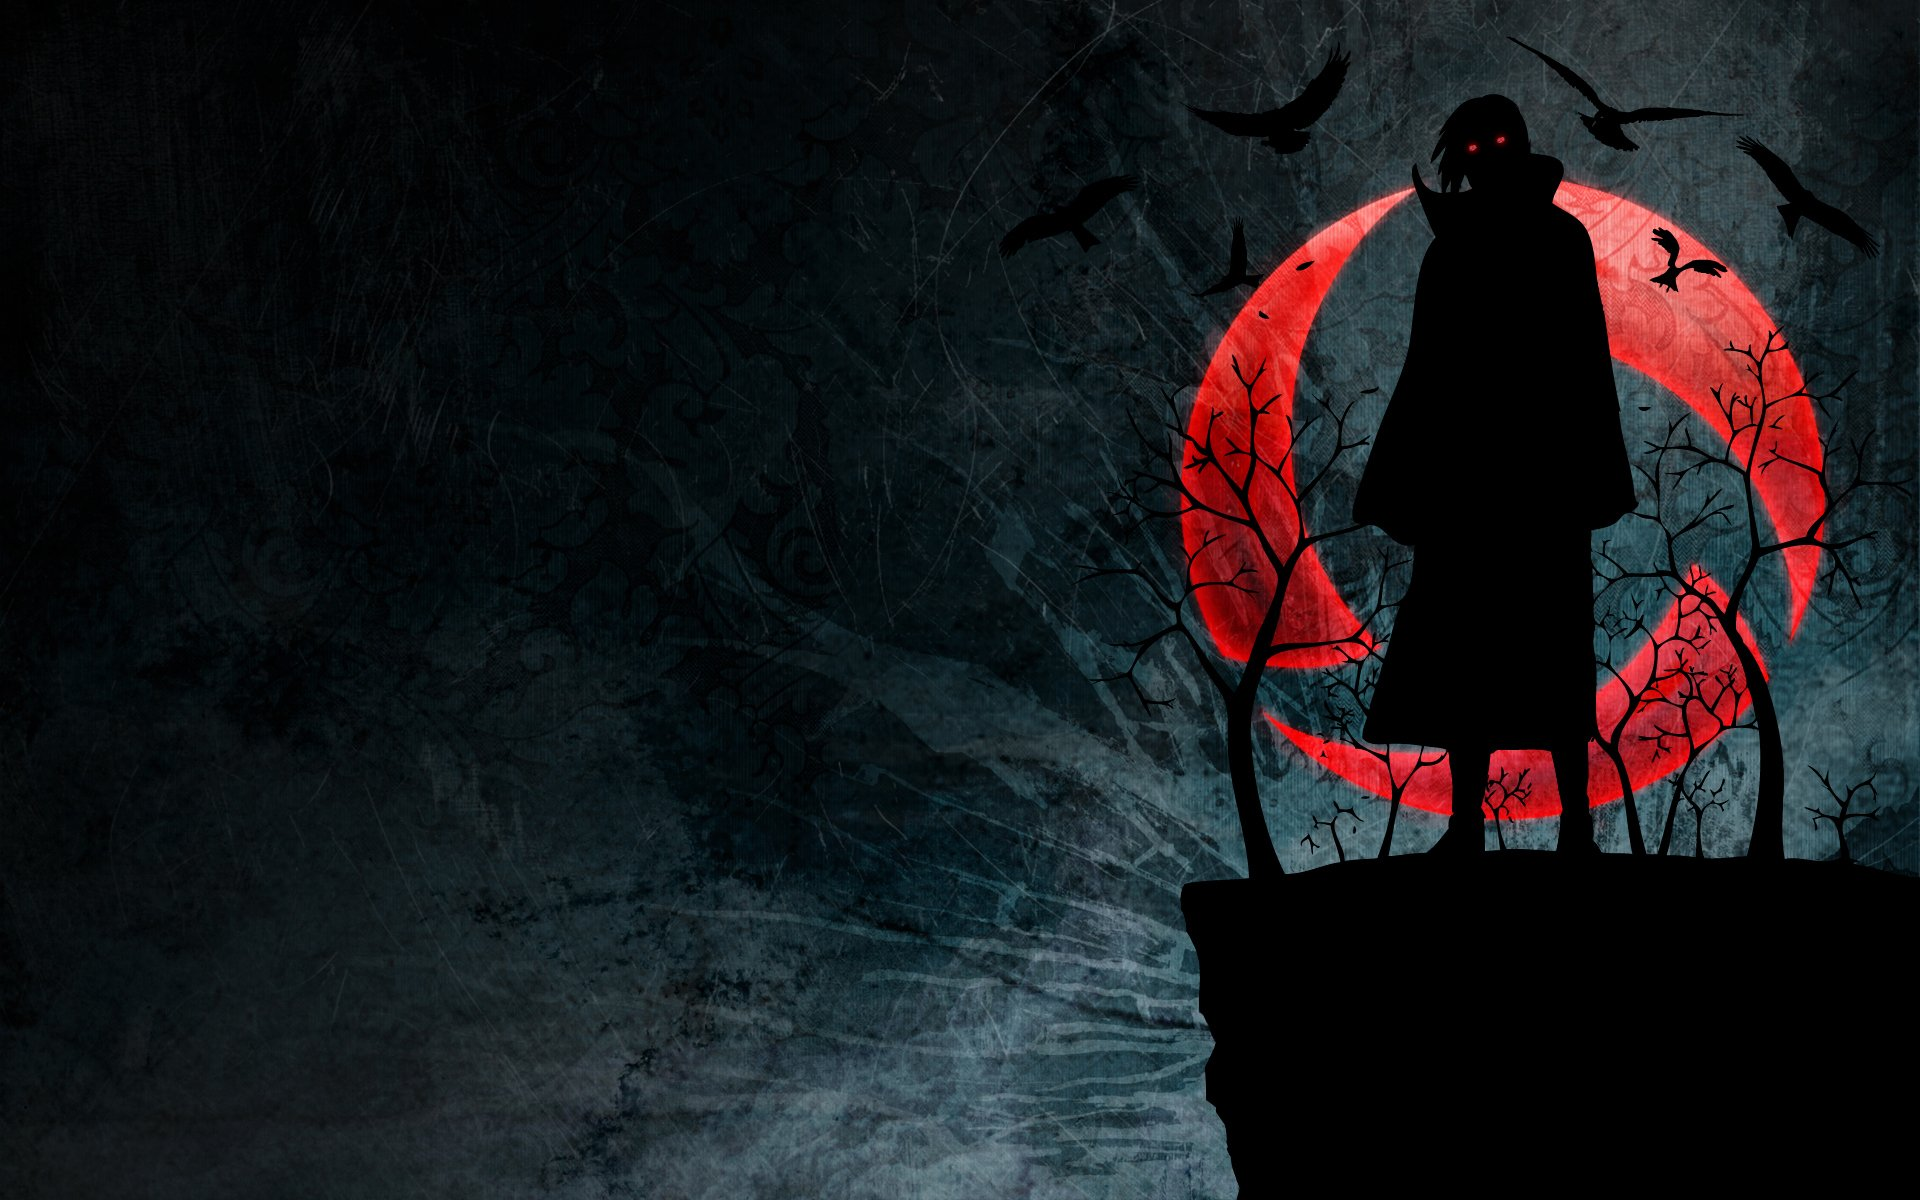 Itachi wallpaper – Your Ultimate Guide